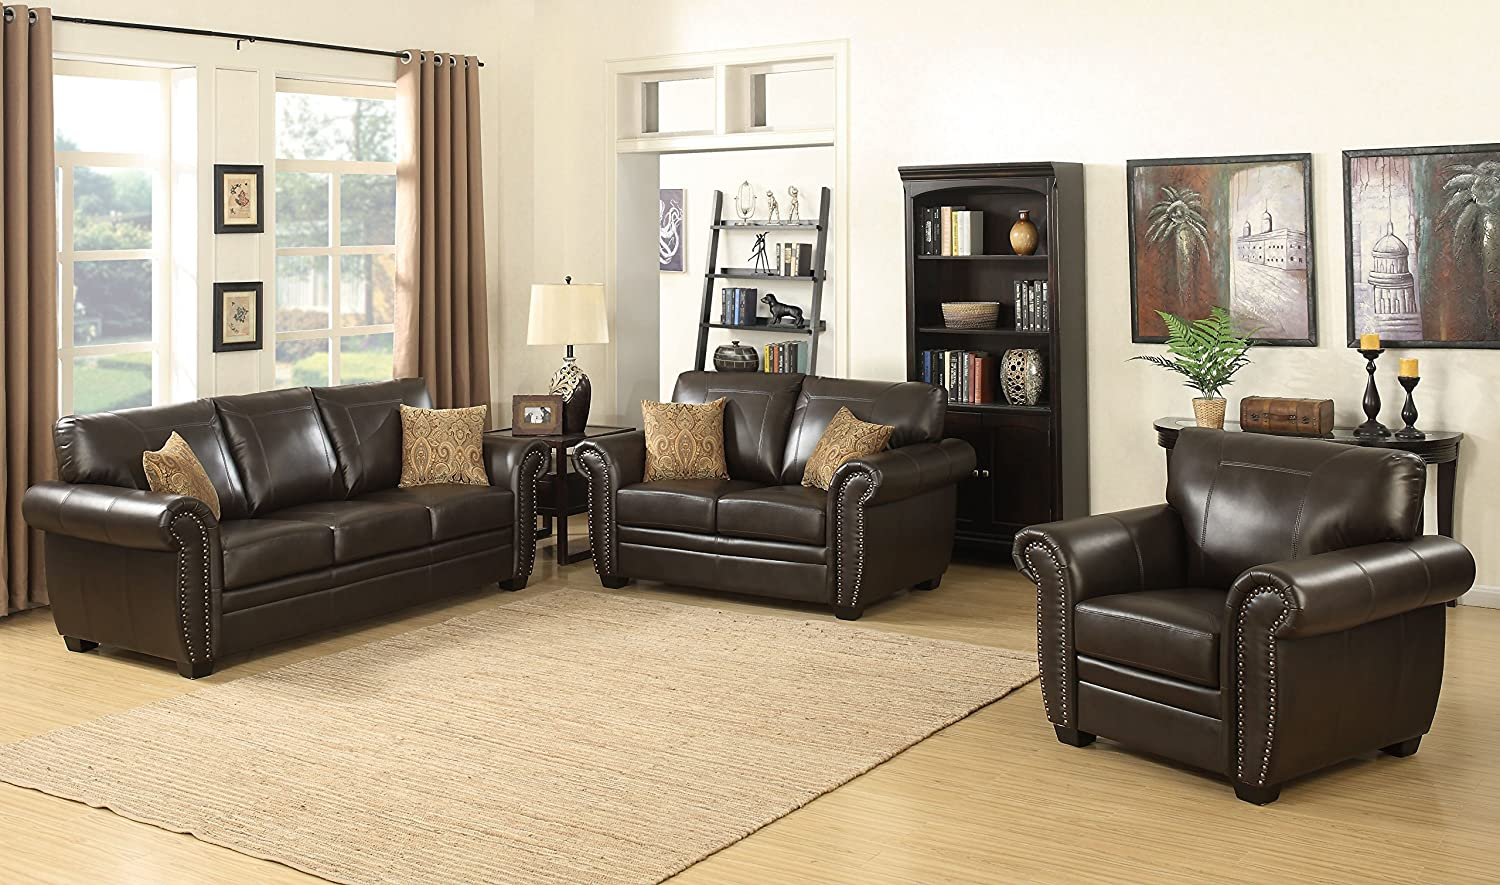 Louis Collection Traditional 3-Piece Upholstered Leather Living Room Sectional with Antique Nail Head Trim and 2 Accent Pillows, Brown